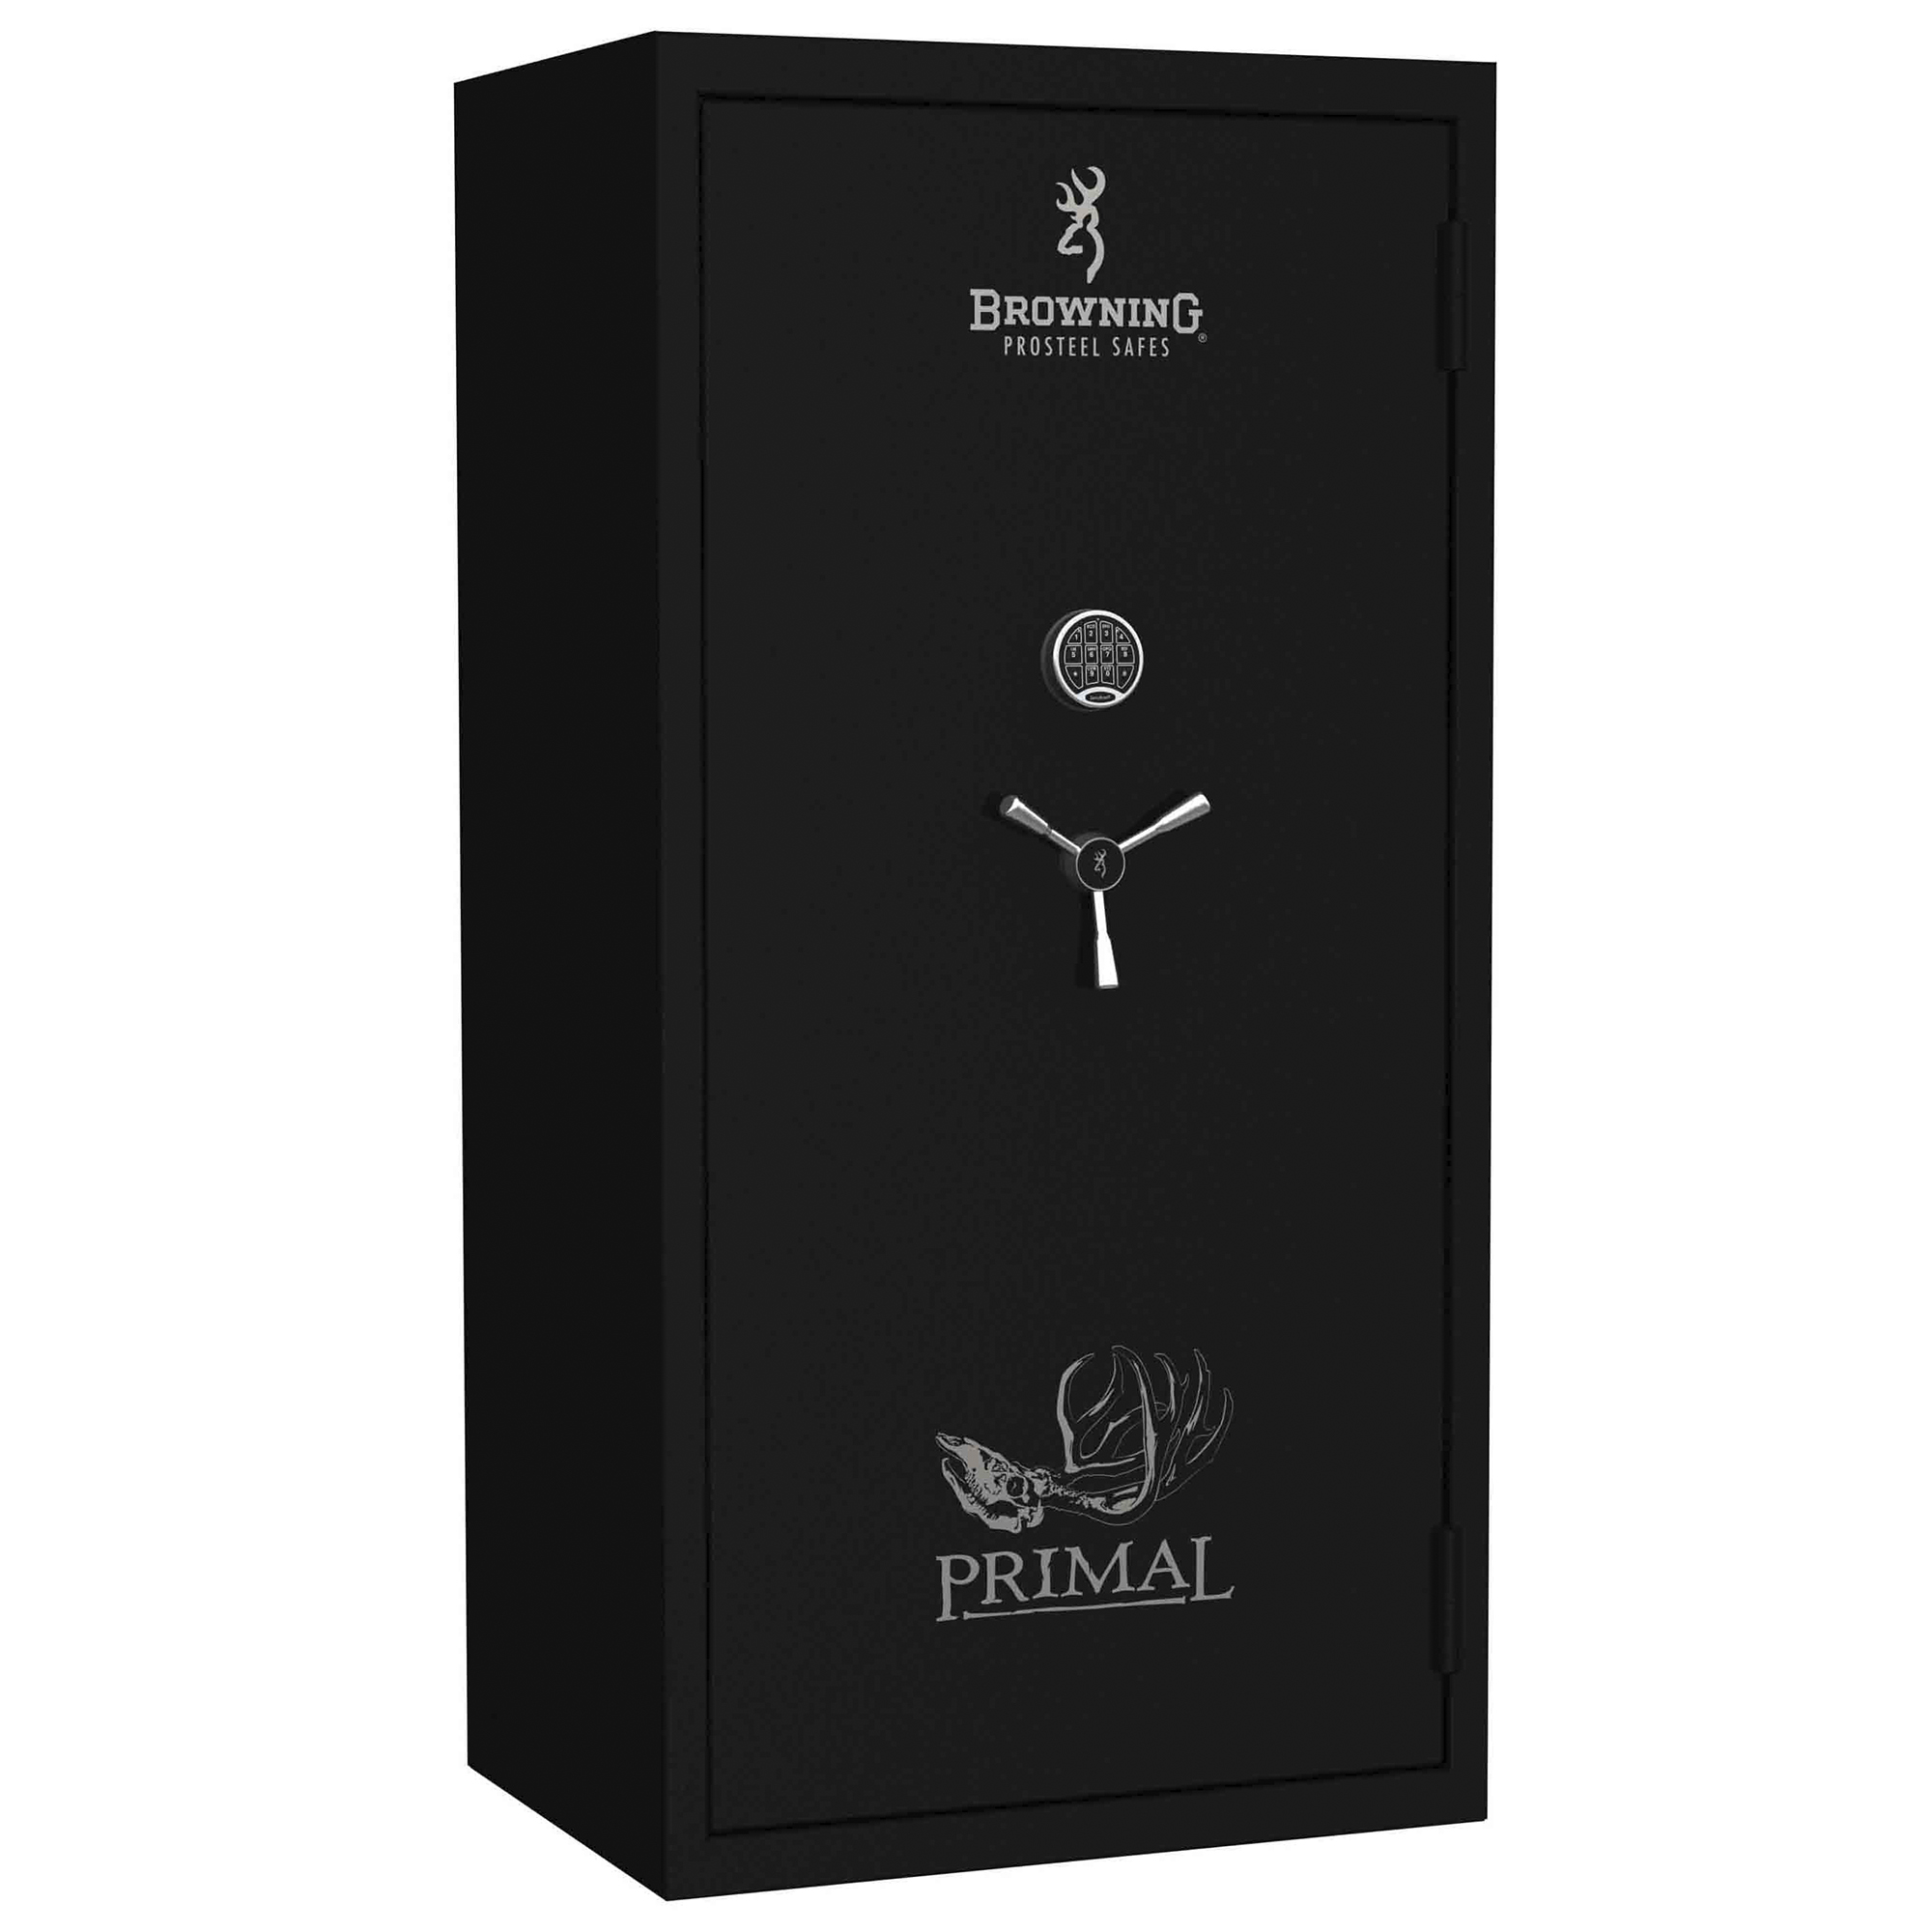 Browning Primal Series 49-Gun Safe, Electronic Lock